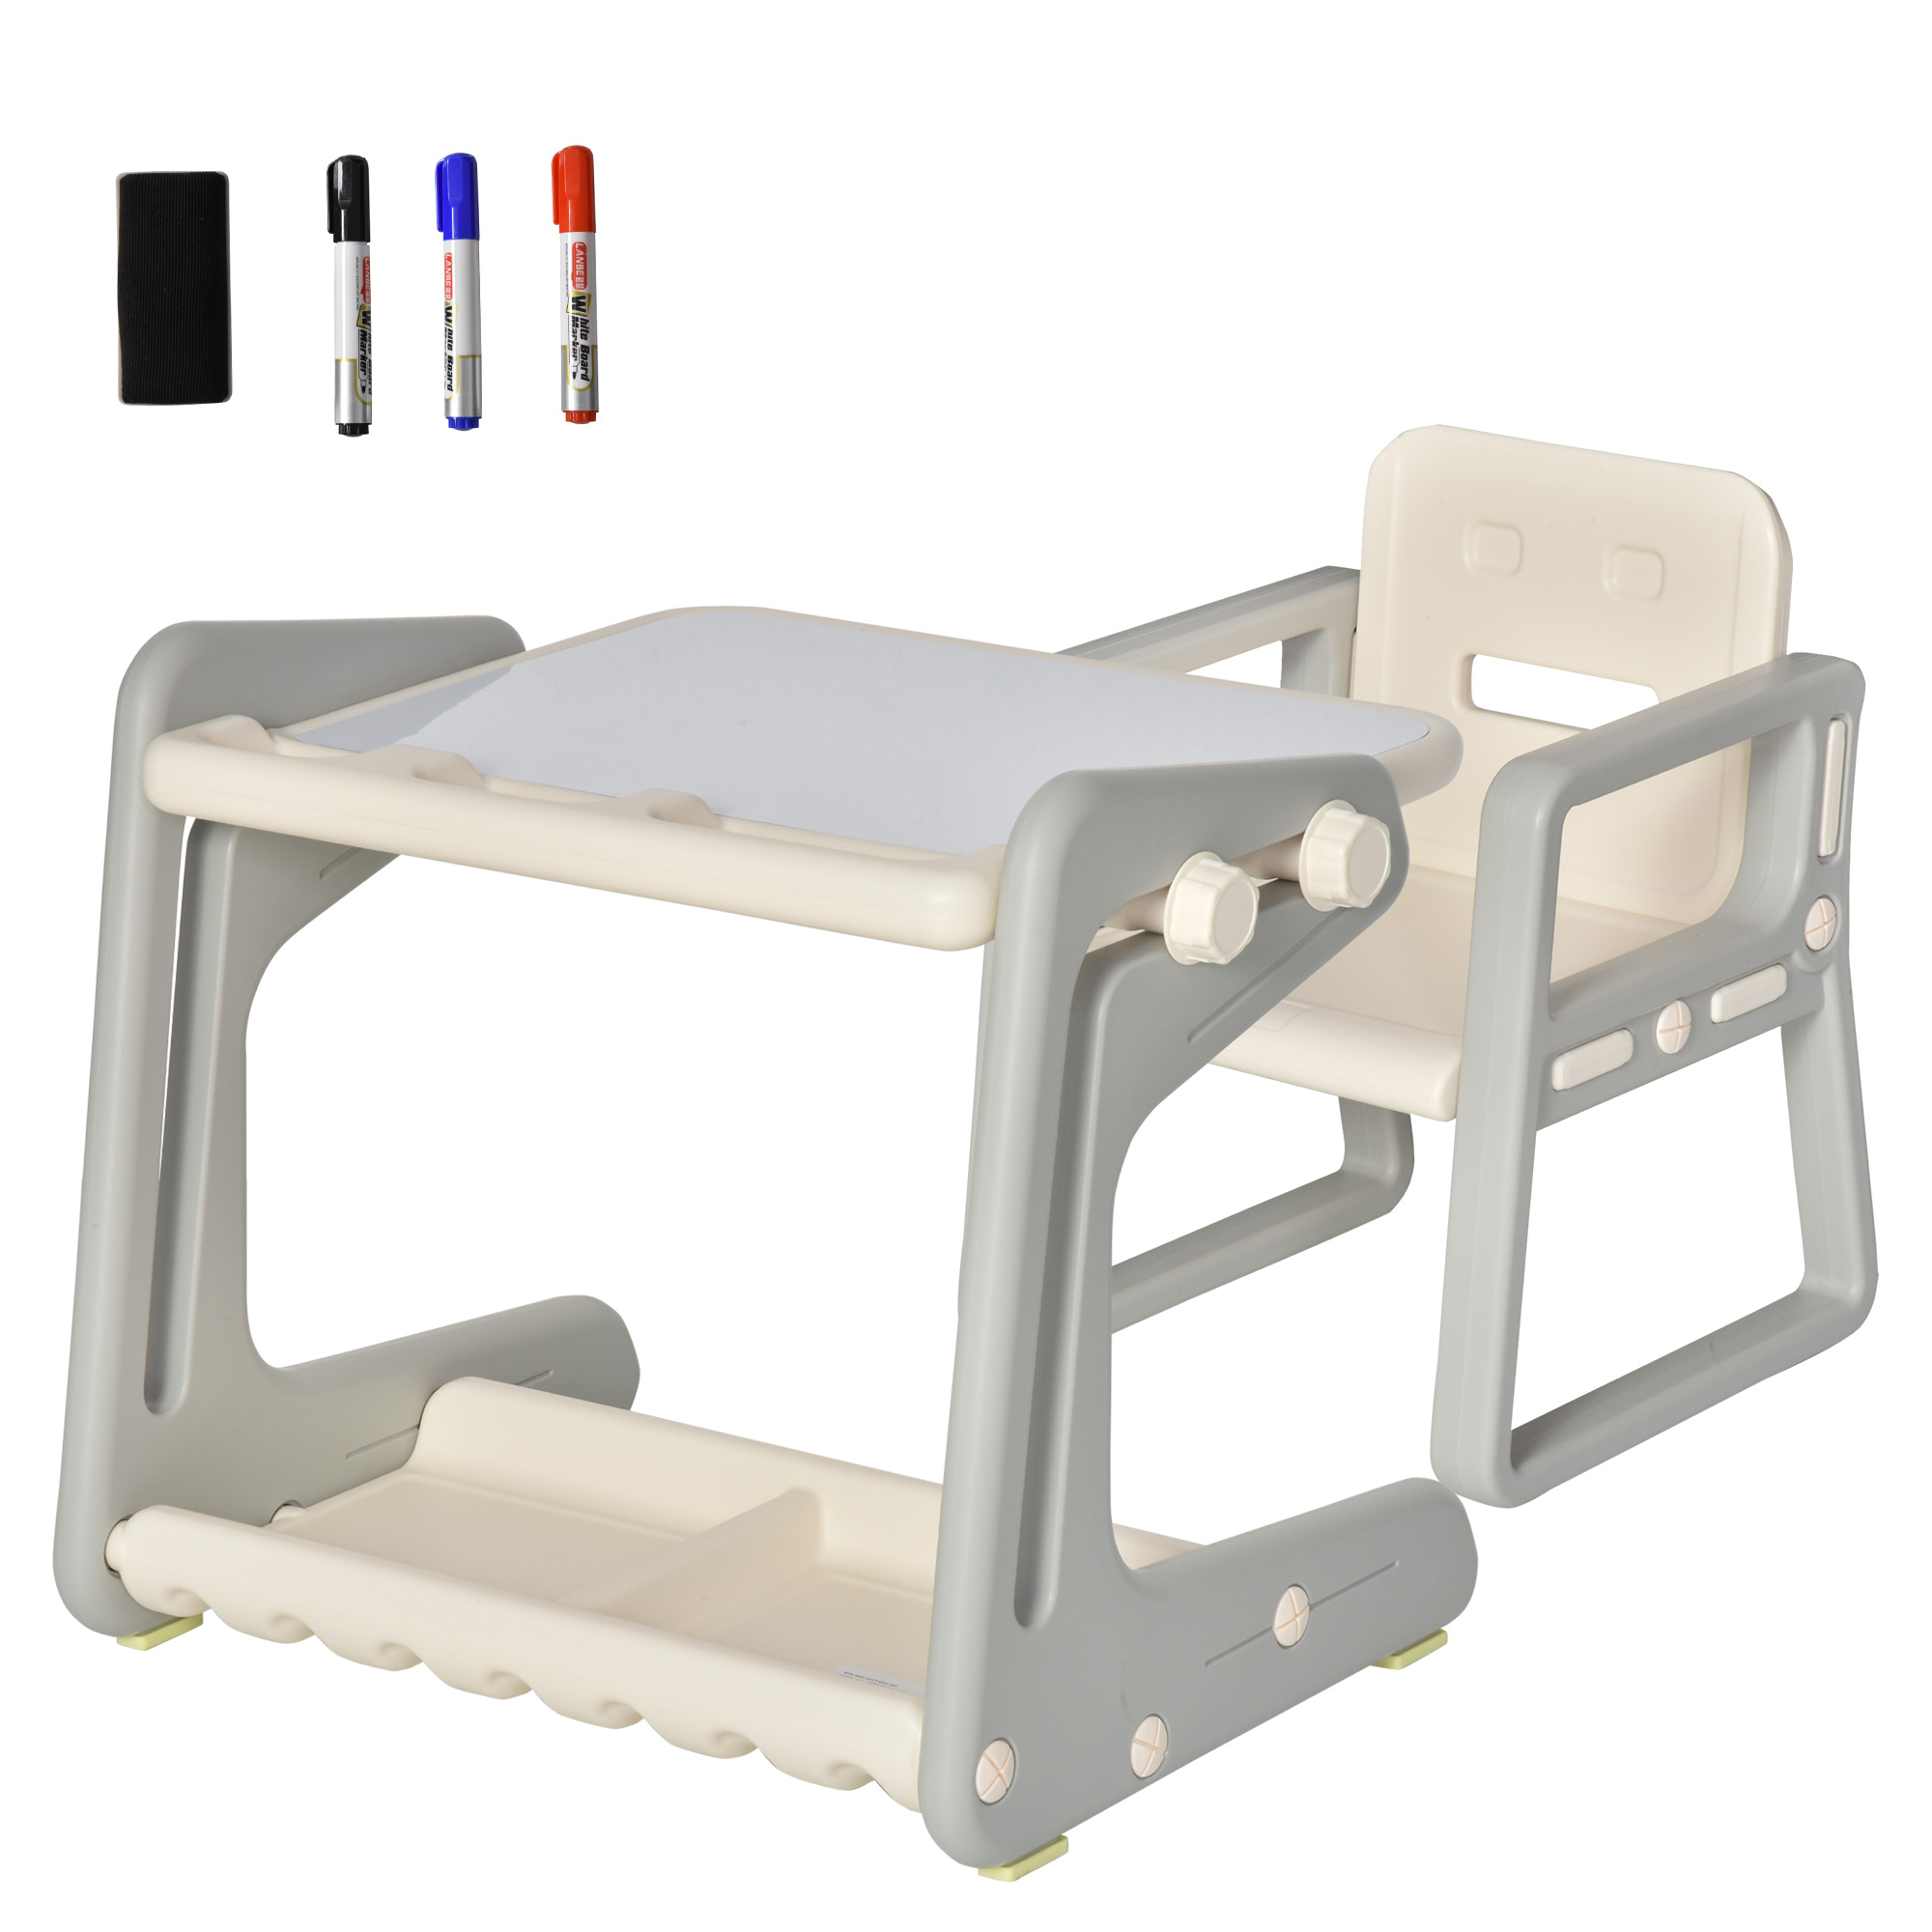 Storage Shelf Qaba 2-Piece Kids Multifunctional Drawing//Writing Table Set with Adjustable Tabletop Angle /& Marker Pack